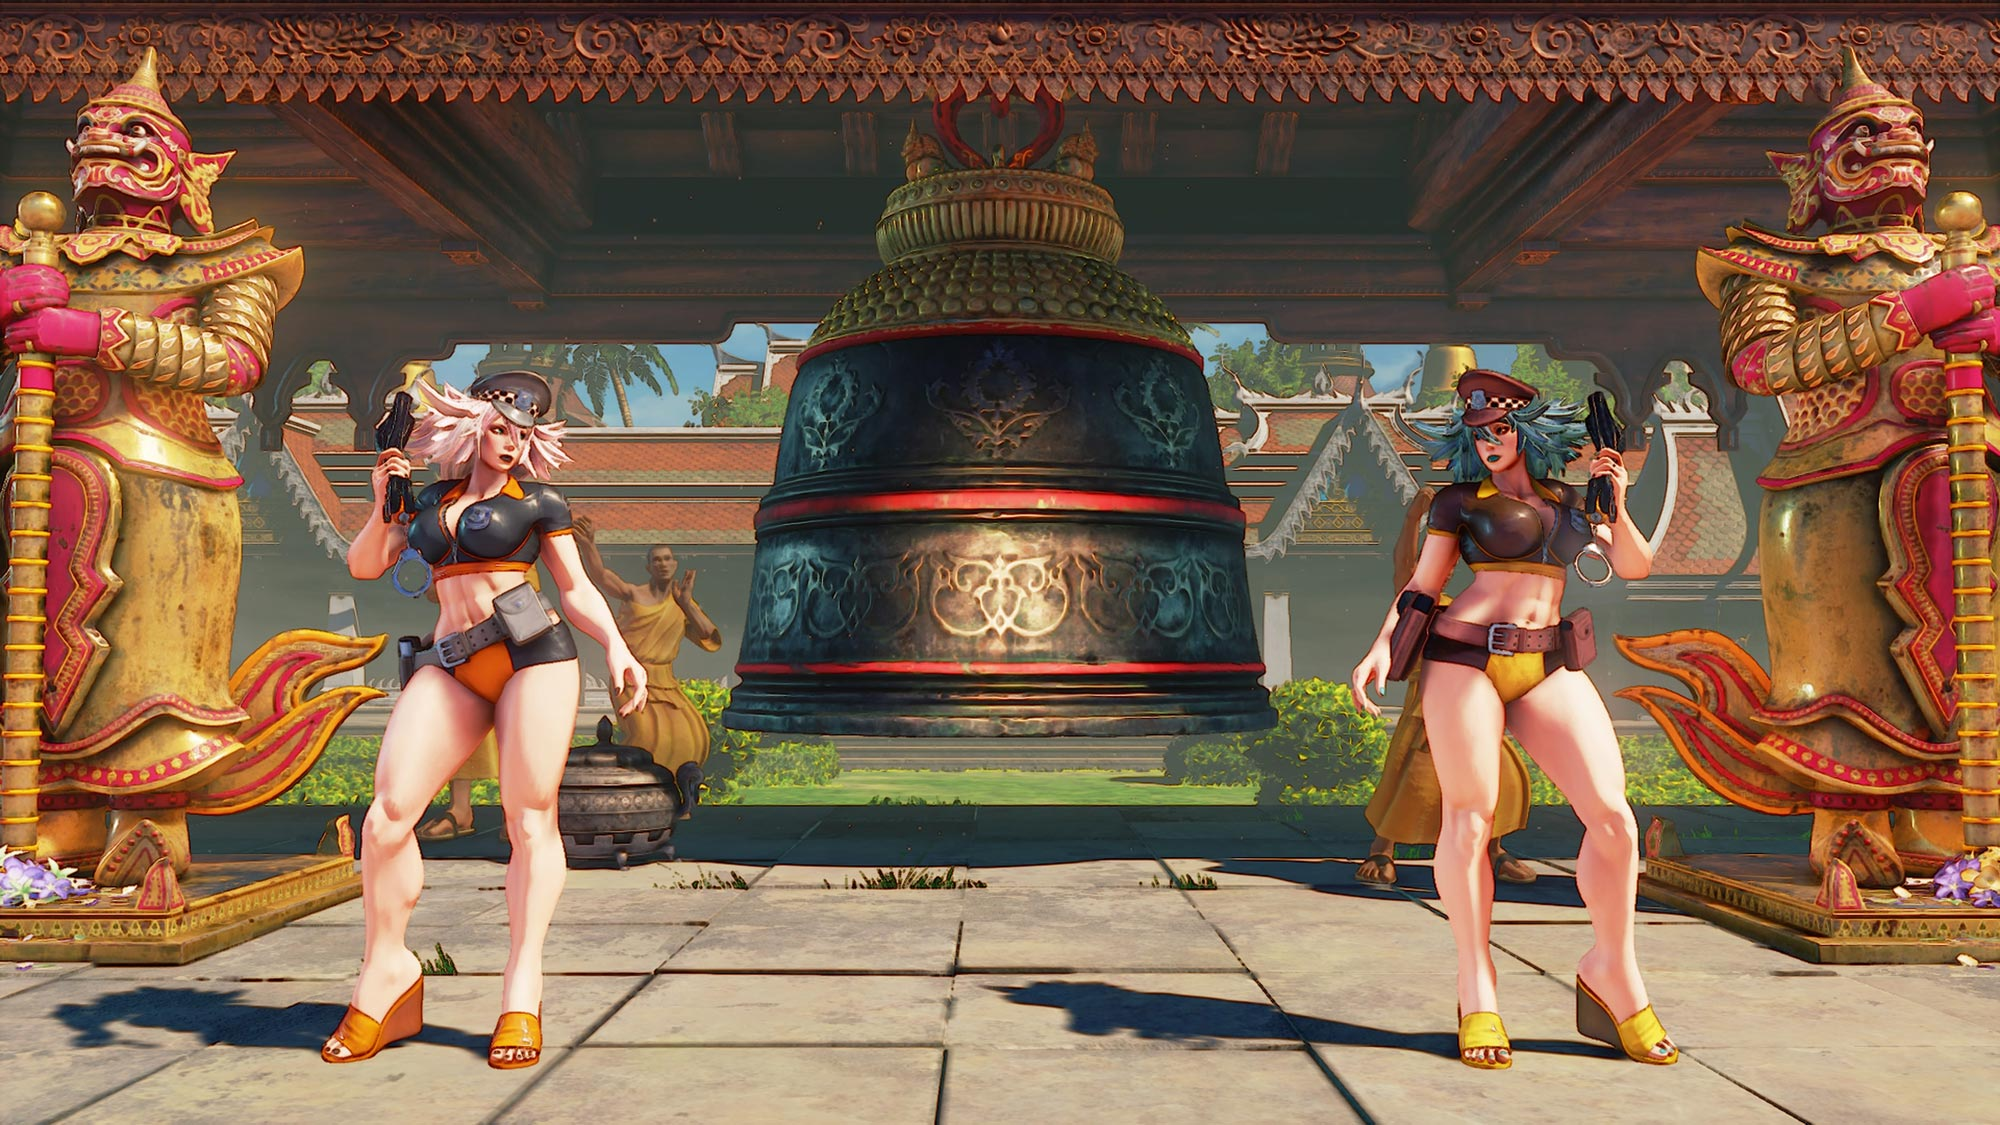 Poison's costume colors in Street Fighter 5 20 out of 22 image gallery